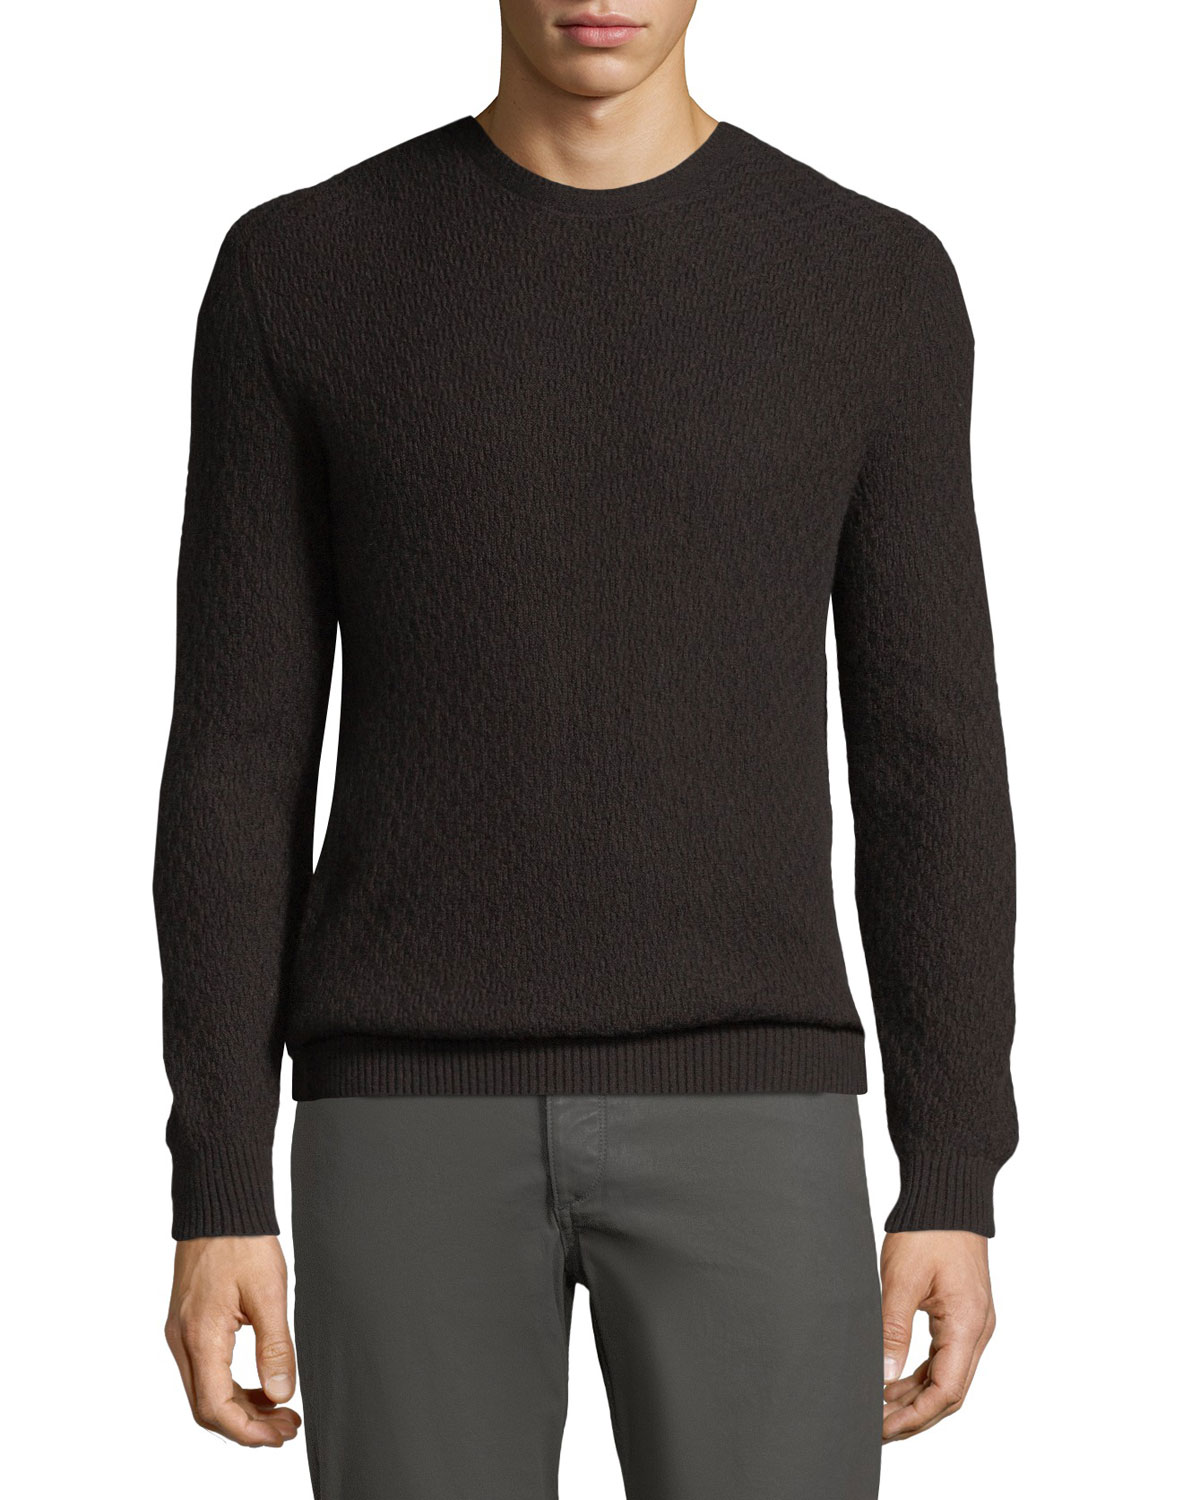 Loro Piana Men's Chainlink-Knit Cashmere Sweater